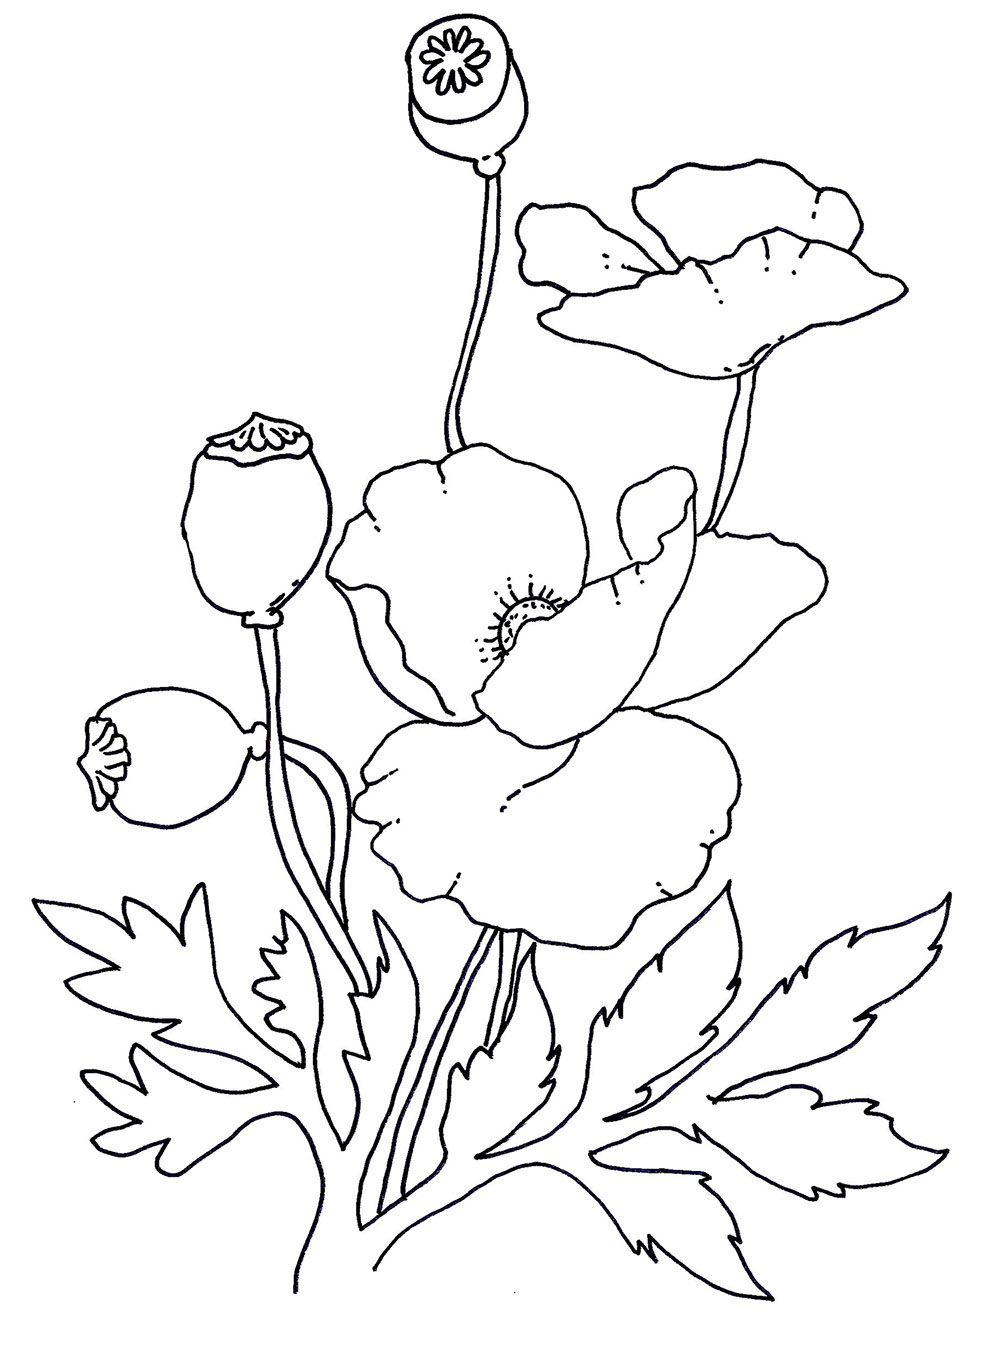 Coloring Pages Poppy Coloring Page Breadedcat Free Printable